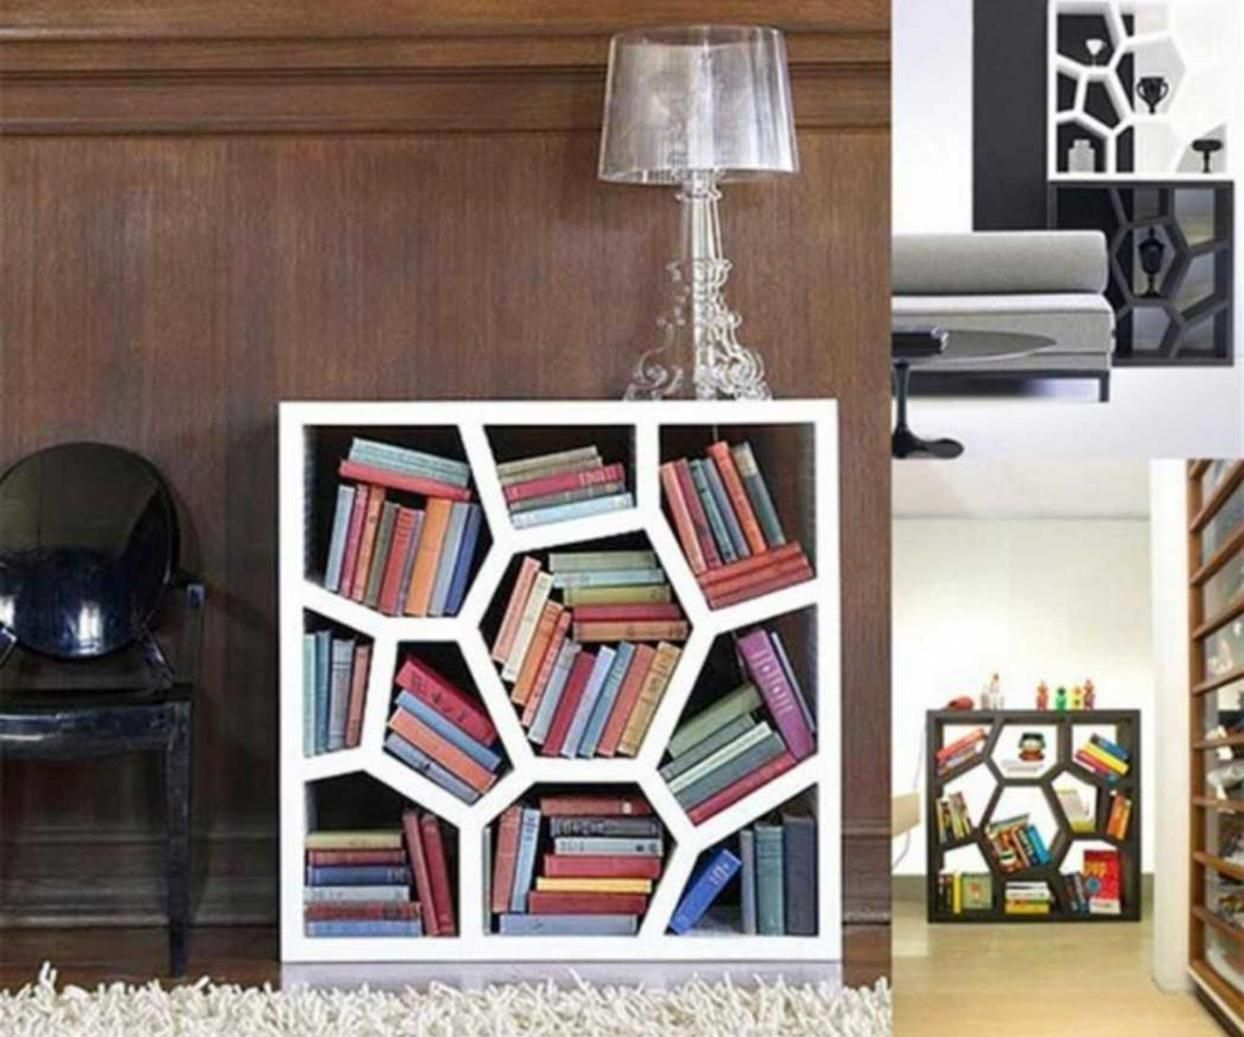 39 Perfect Bookshelves For Small Spaces And Decor Ideas Creative